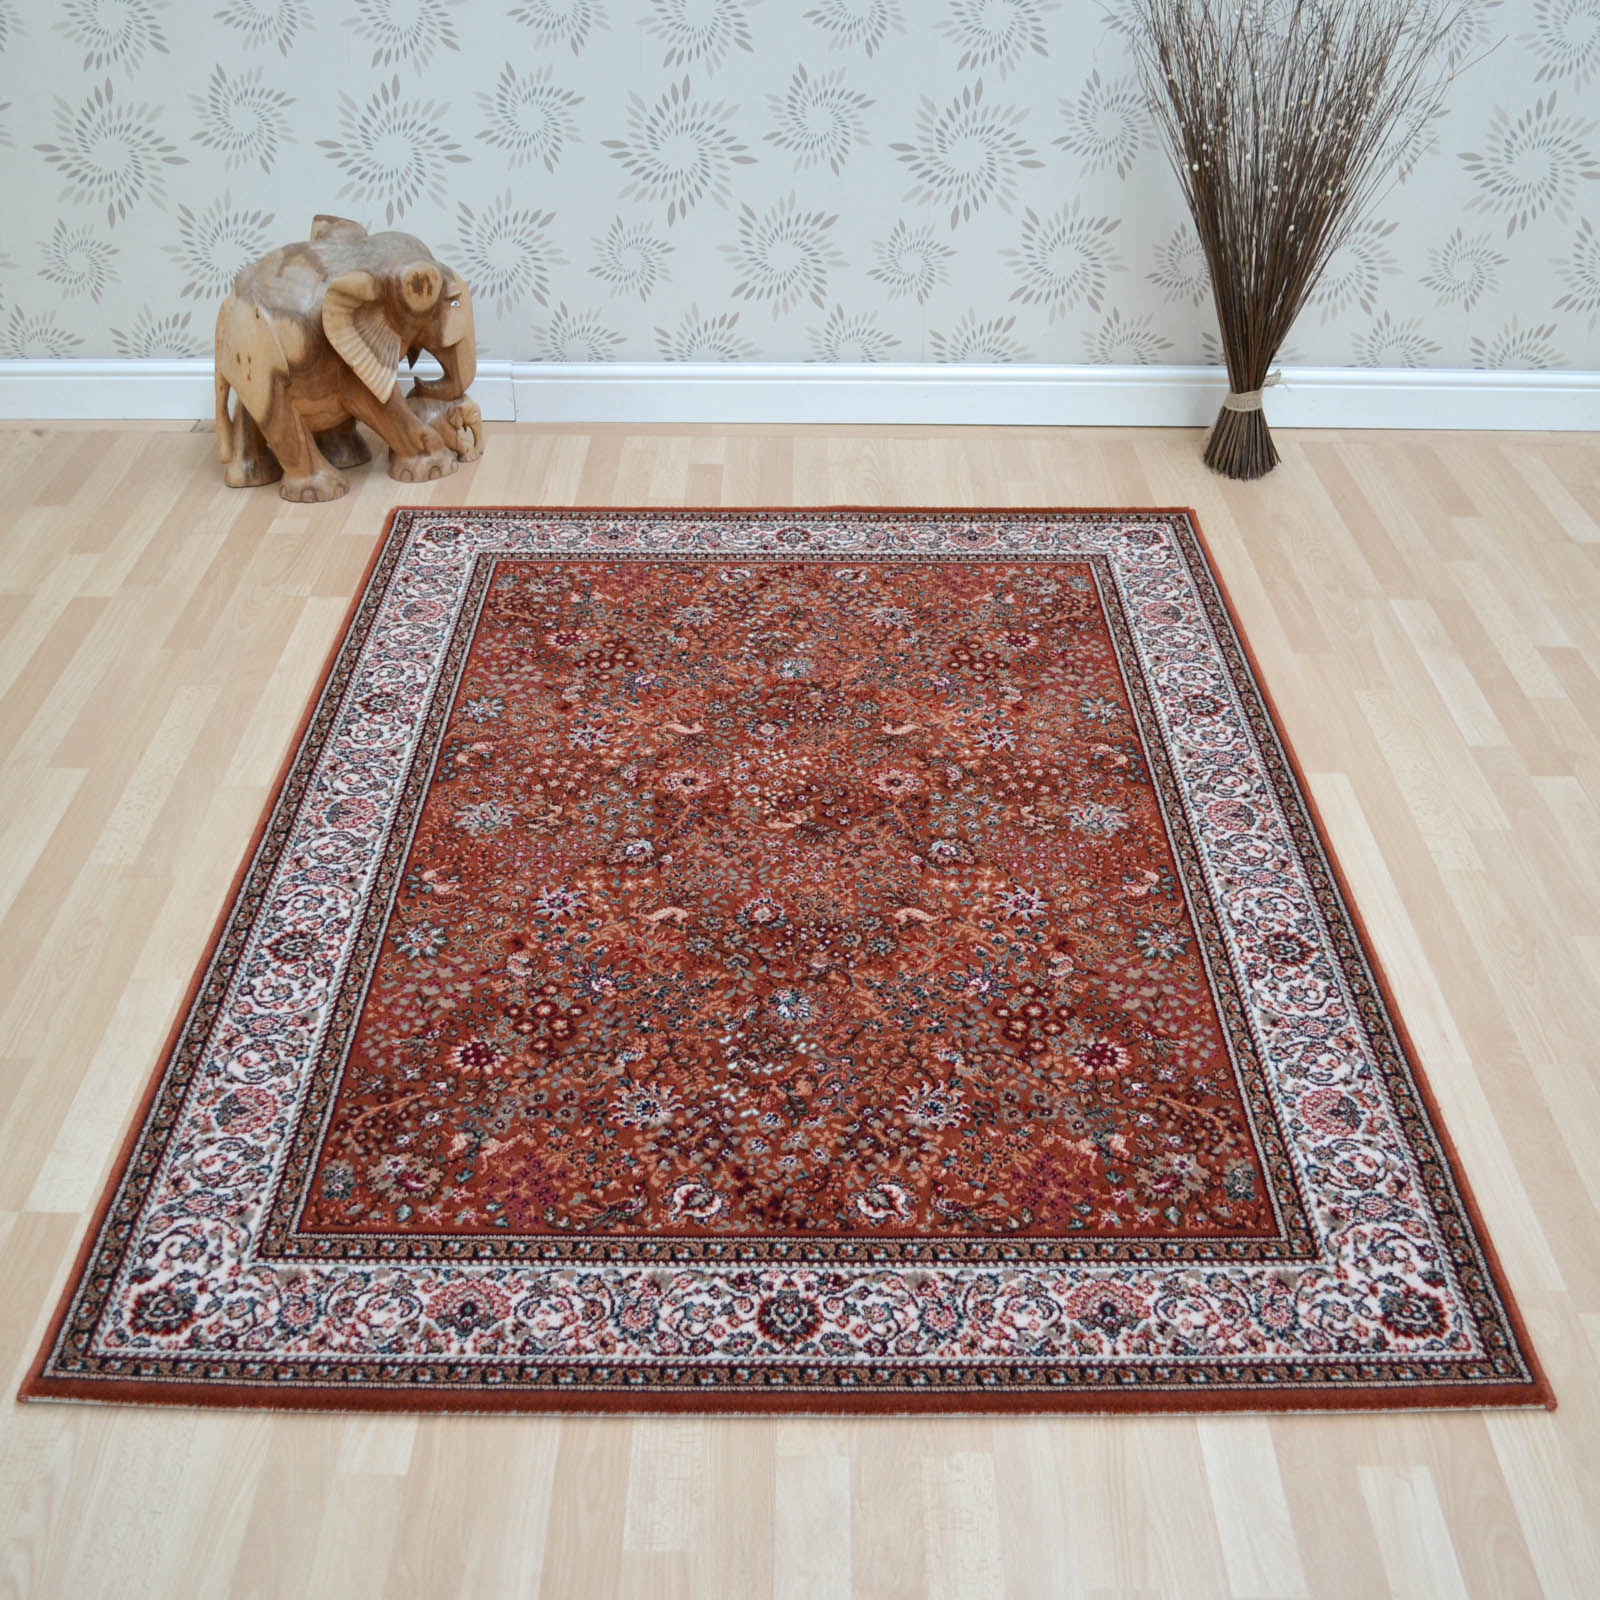 Lano Imperial Rugs 1959 672 Terracotta